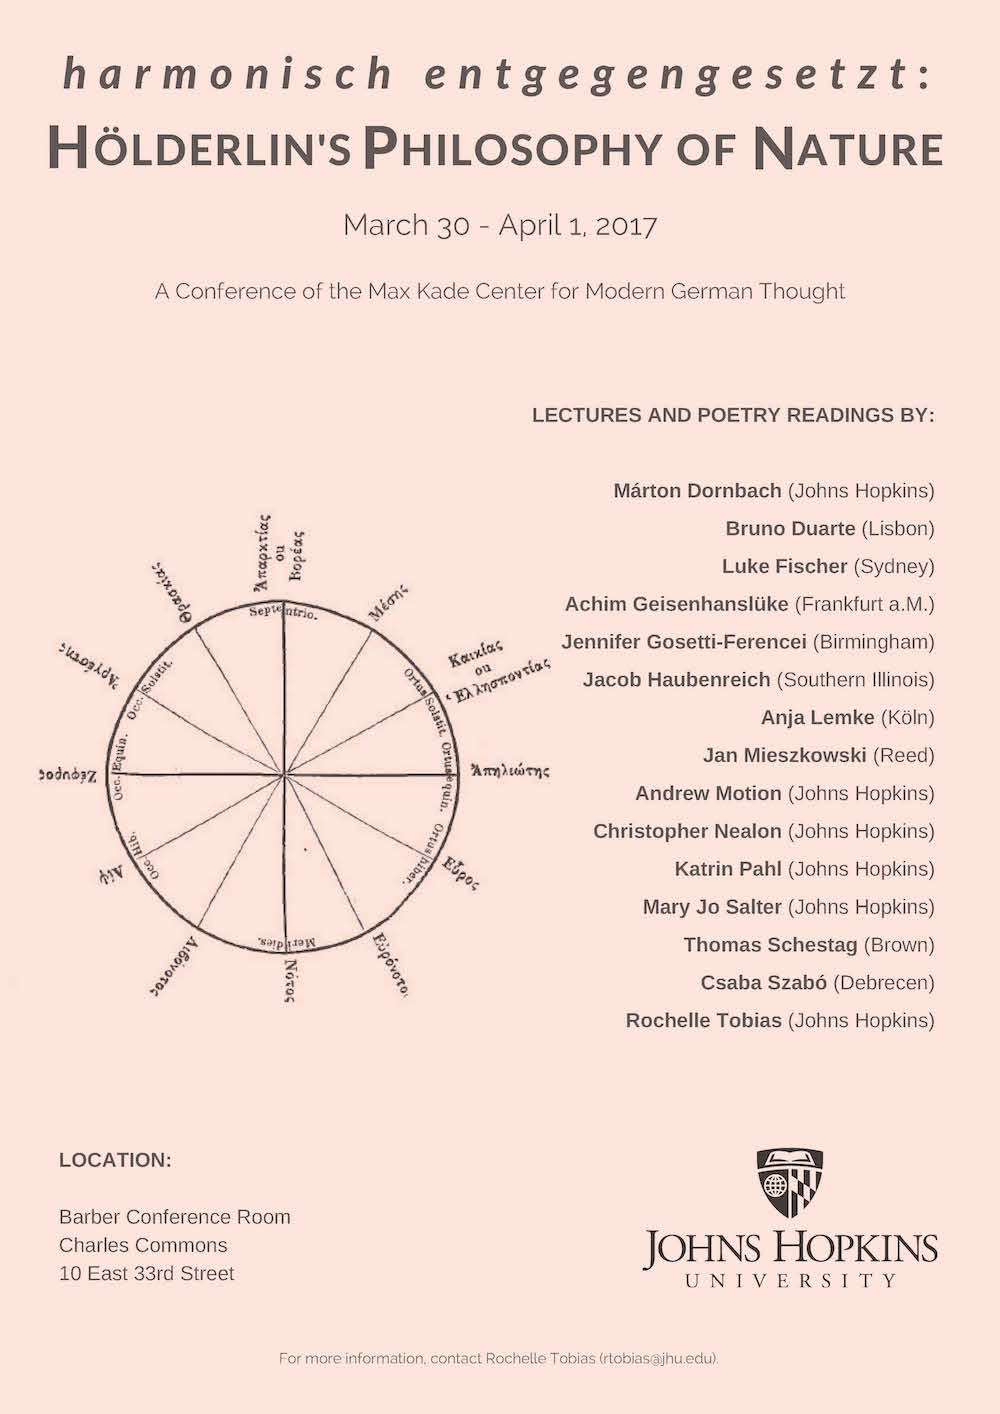 Max Kade Center International Conference, March 30 to April 1